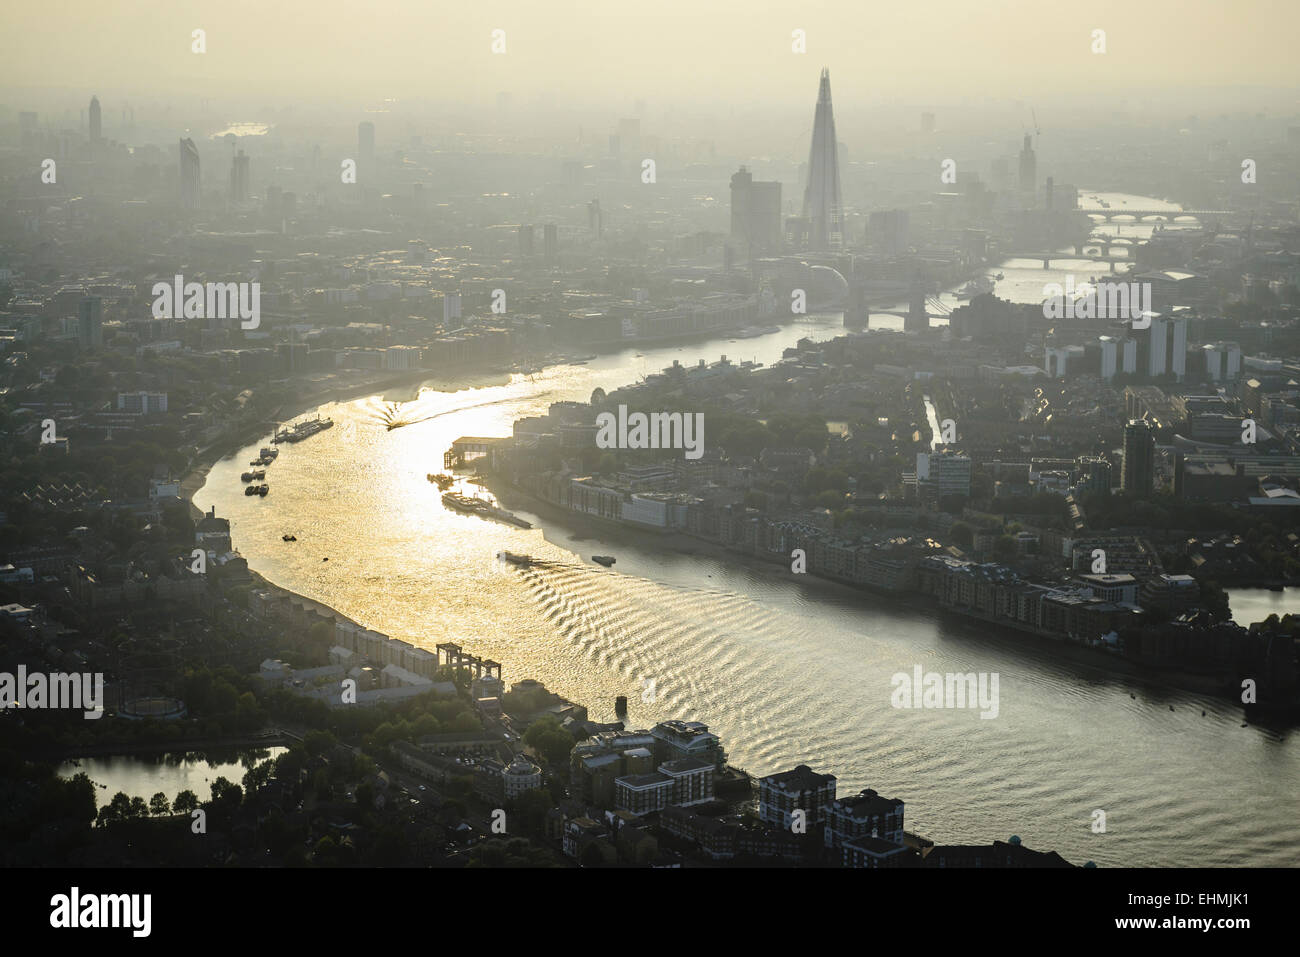 Aerial view of London cityscape and river, England Stock Photo